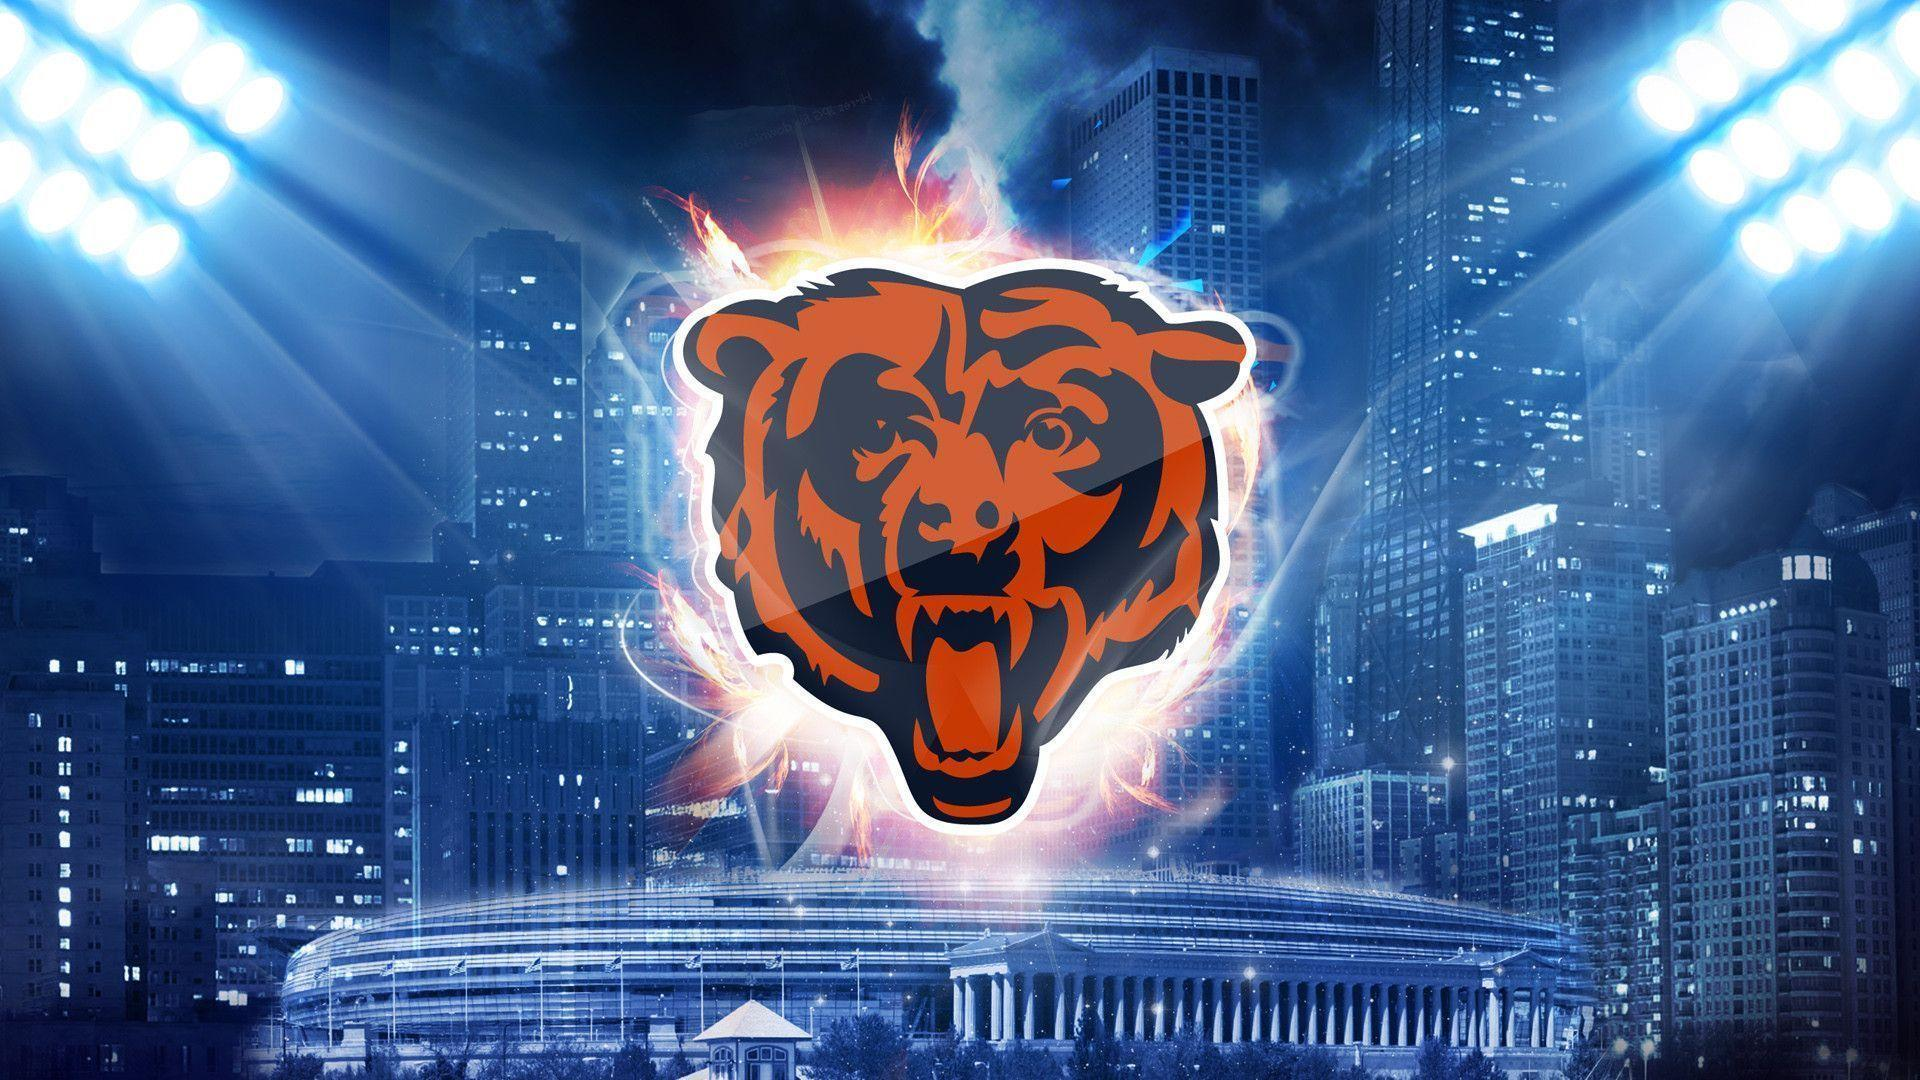 Chicago Bears Screensavers Wallpapers - Wallpaper Cave